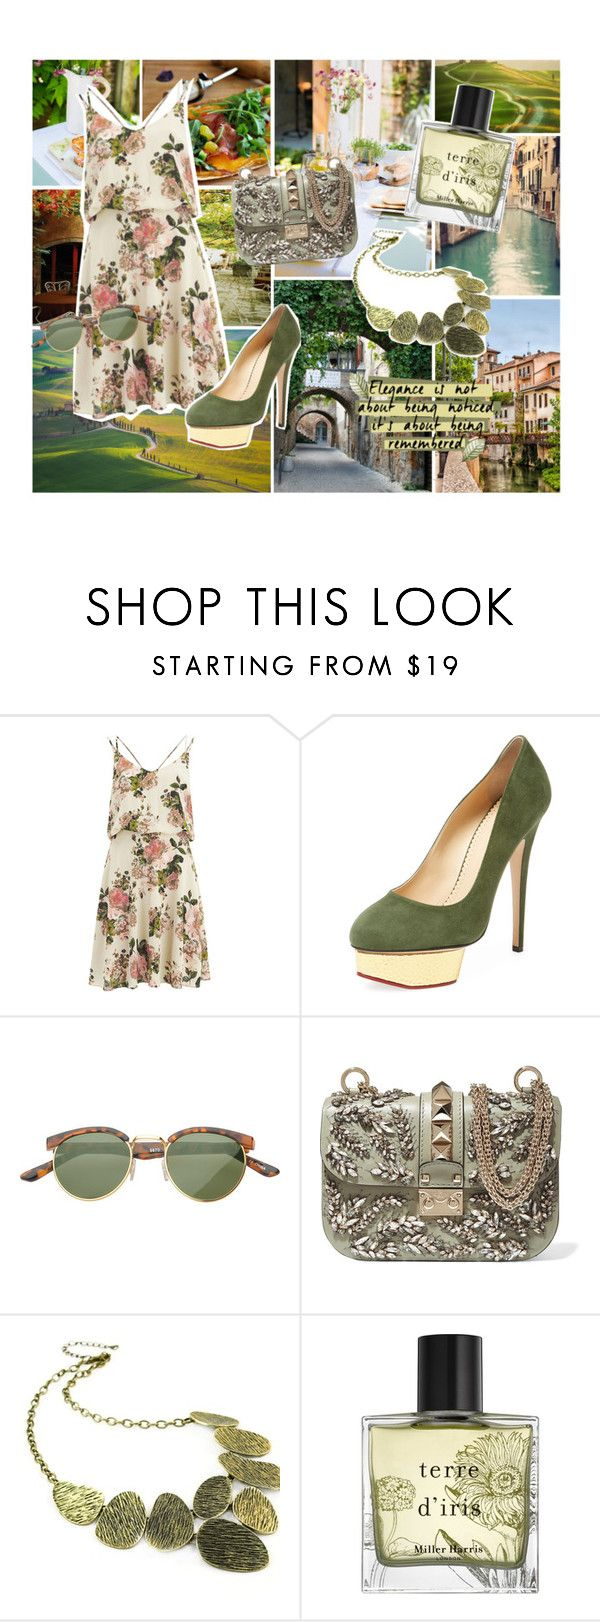 """♥"" by antonelamarc ❤ liked on Polyvore featuring Cinque, Avenue, VILA, Charlotte Olympia, Valentino, Emi Jewellery and Miller Harris"